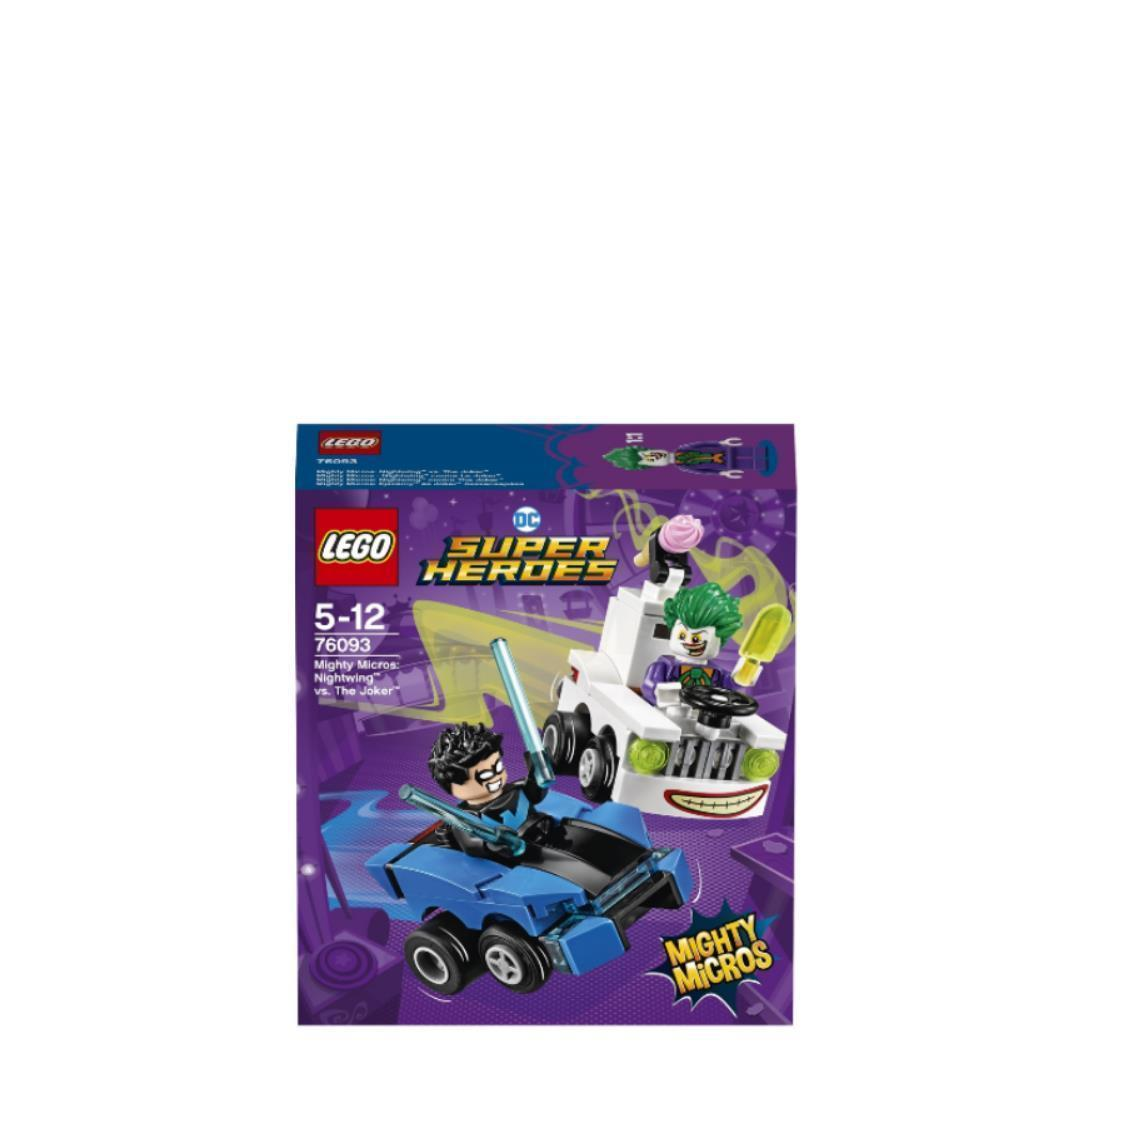 Mighty Micros Nightwing Vs The Joker 76093